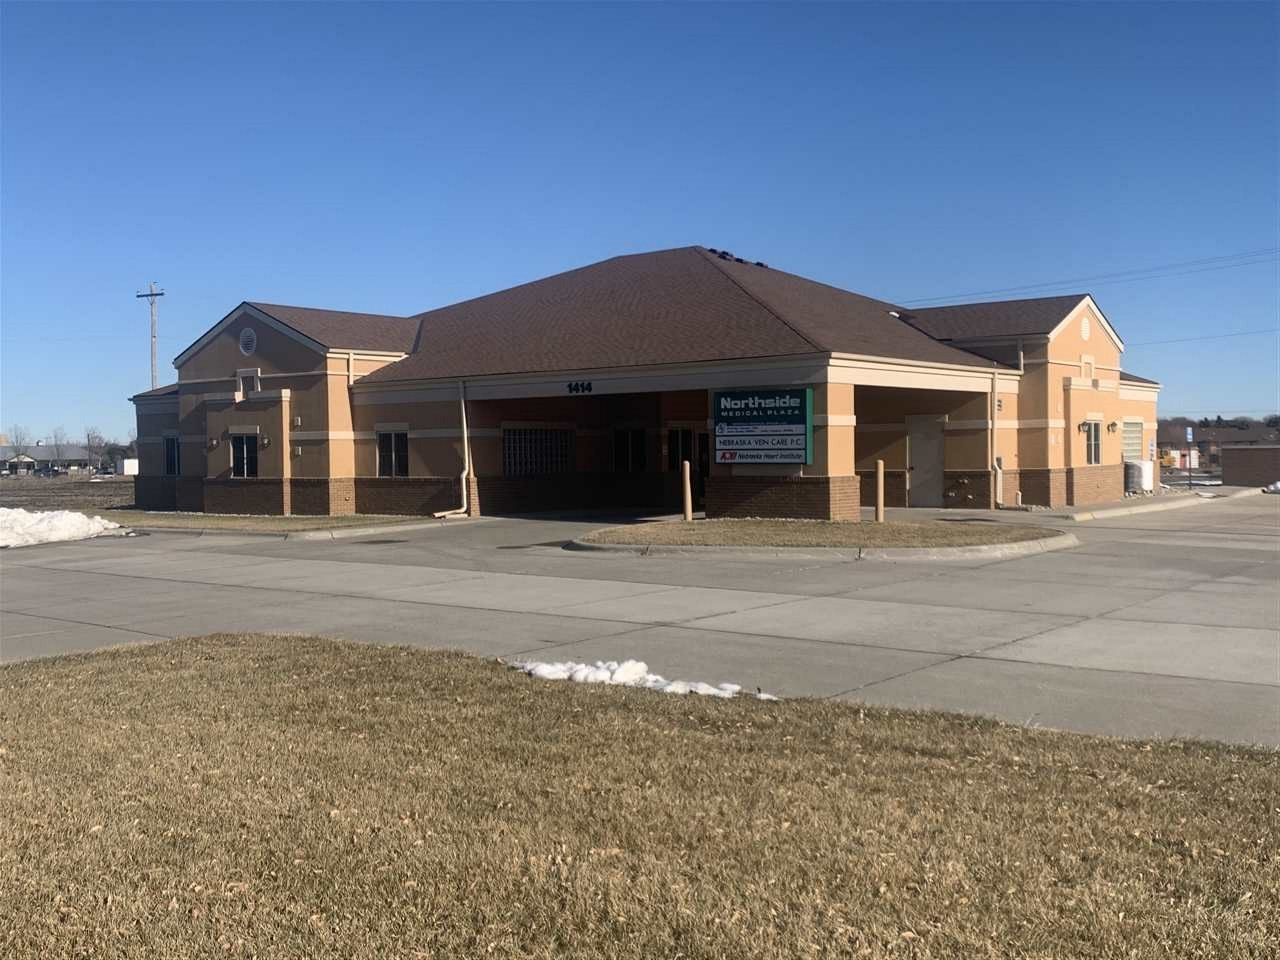 Here is your chance to own a 4800 Sq Ft building that is ready to move into and has unlimited possibilities.  13 separate spacious rooms ready to be used for office or medical purposes.  6 separate restrooms 3 equipped with showers as well as a conference room and client/patient check in area and sitting room.  There are too many possibilities  to list.  Check it out today!